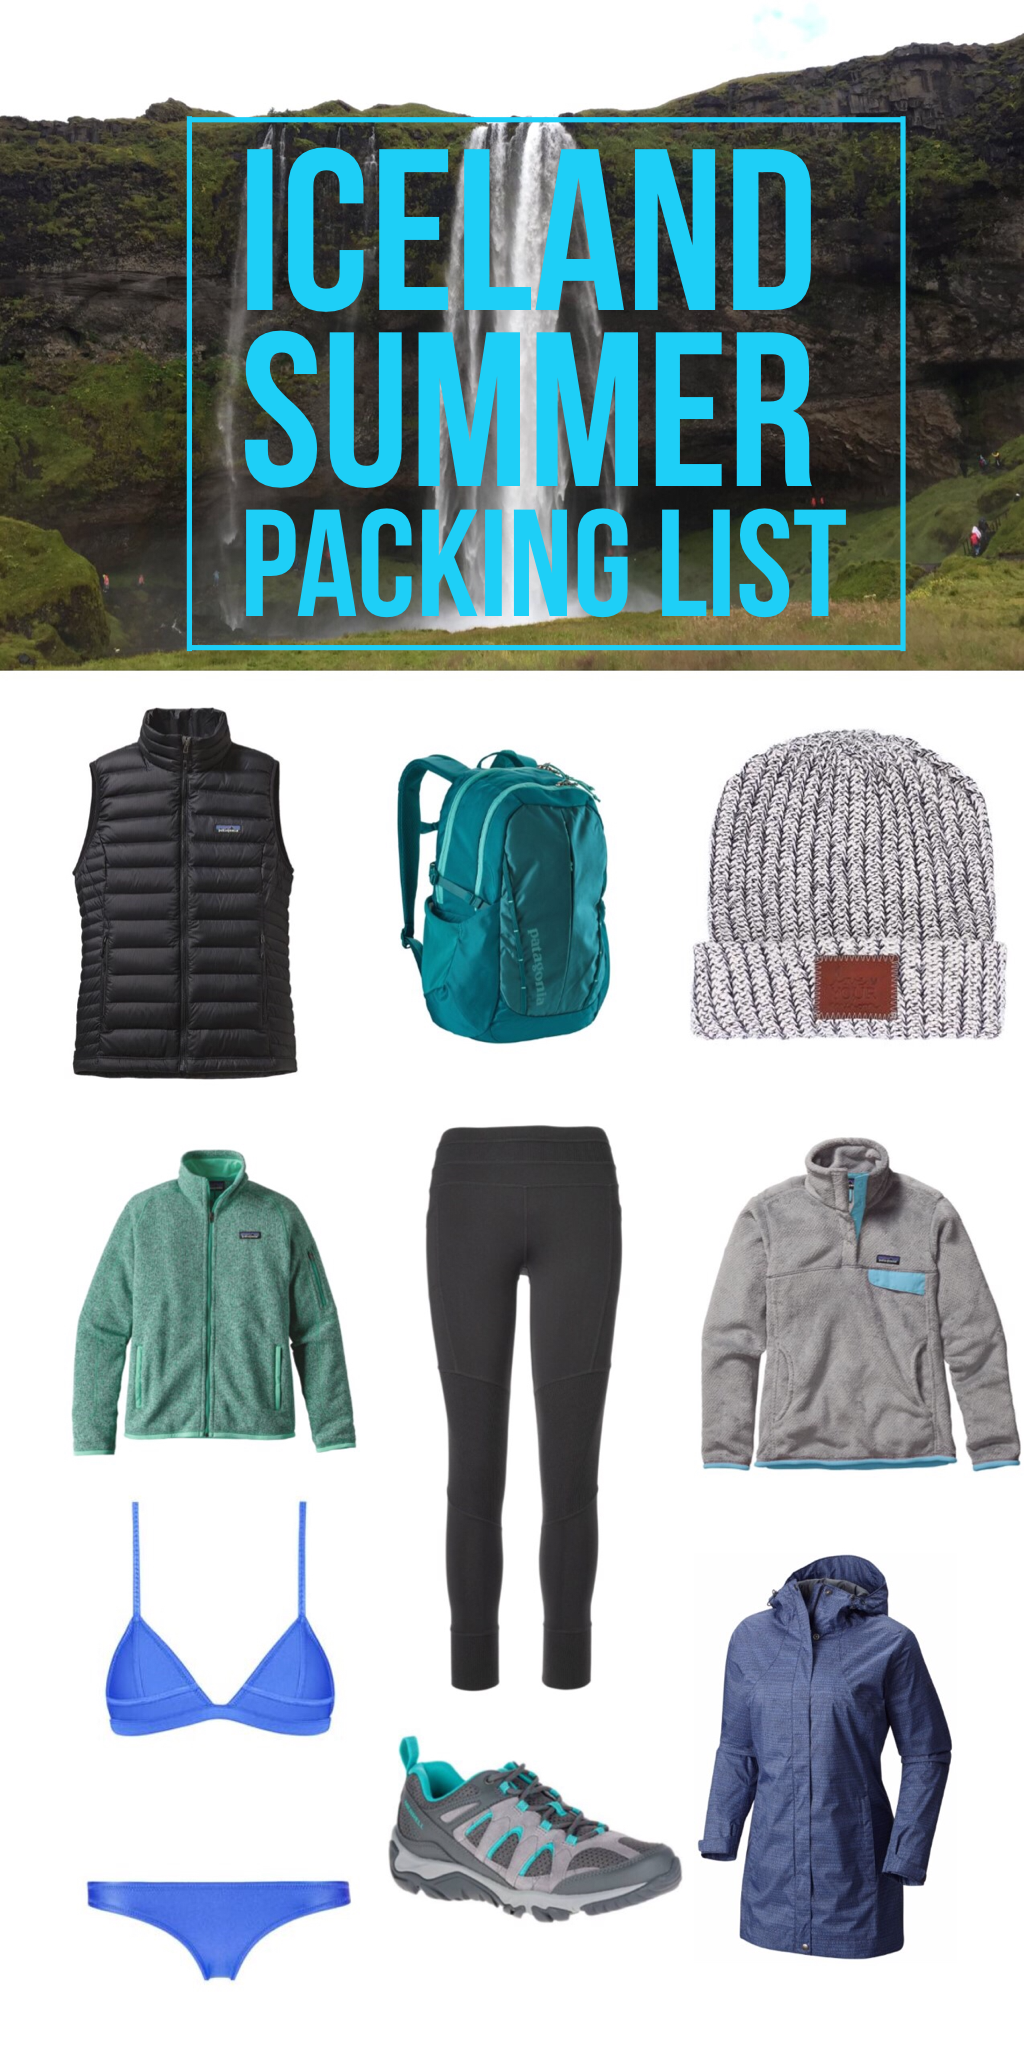 Iceland Packing List: Summer